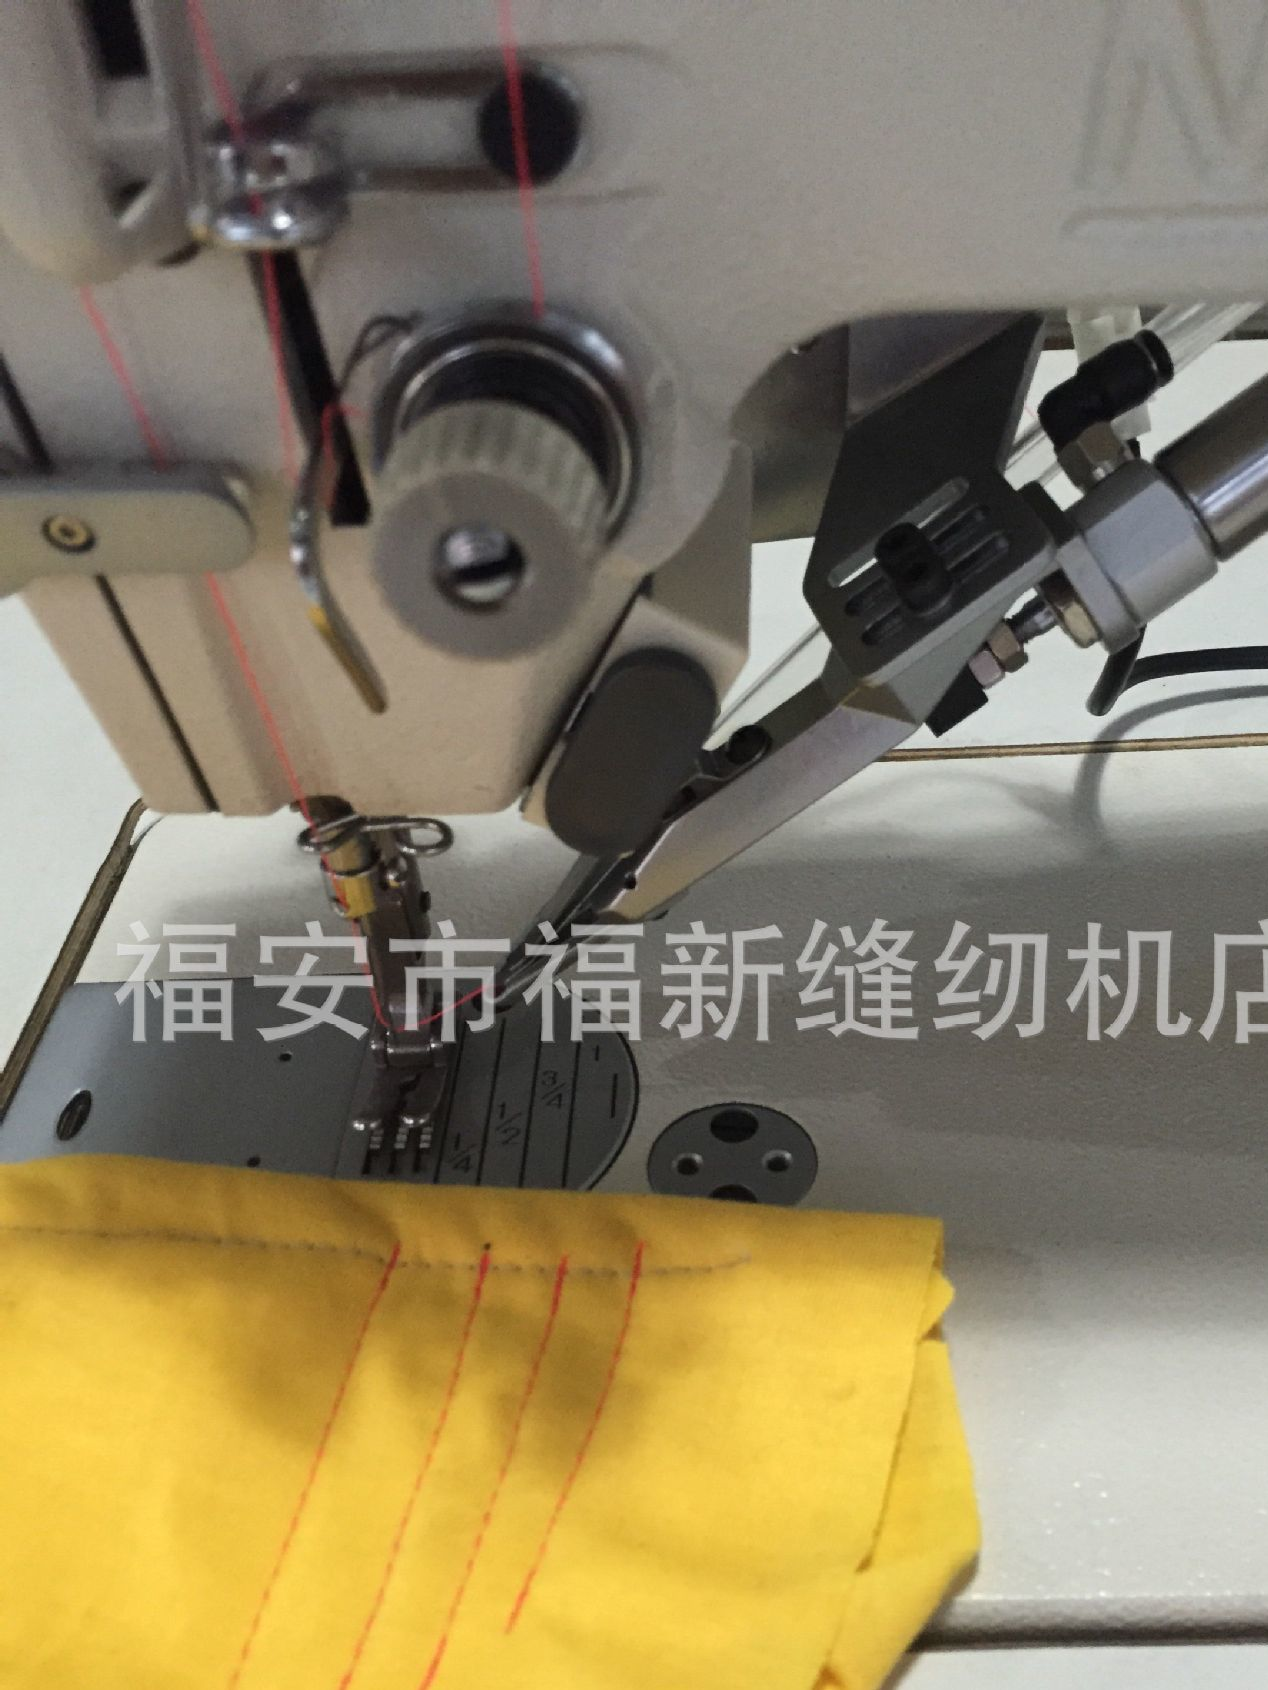 Supply sewing machine industrial sewing machine electric sewing machine computer flat car computer sewing machine